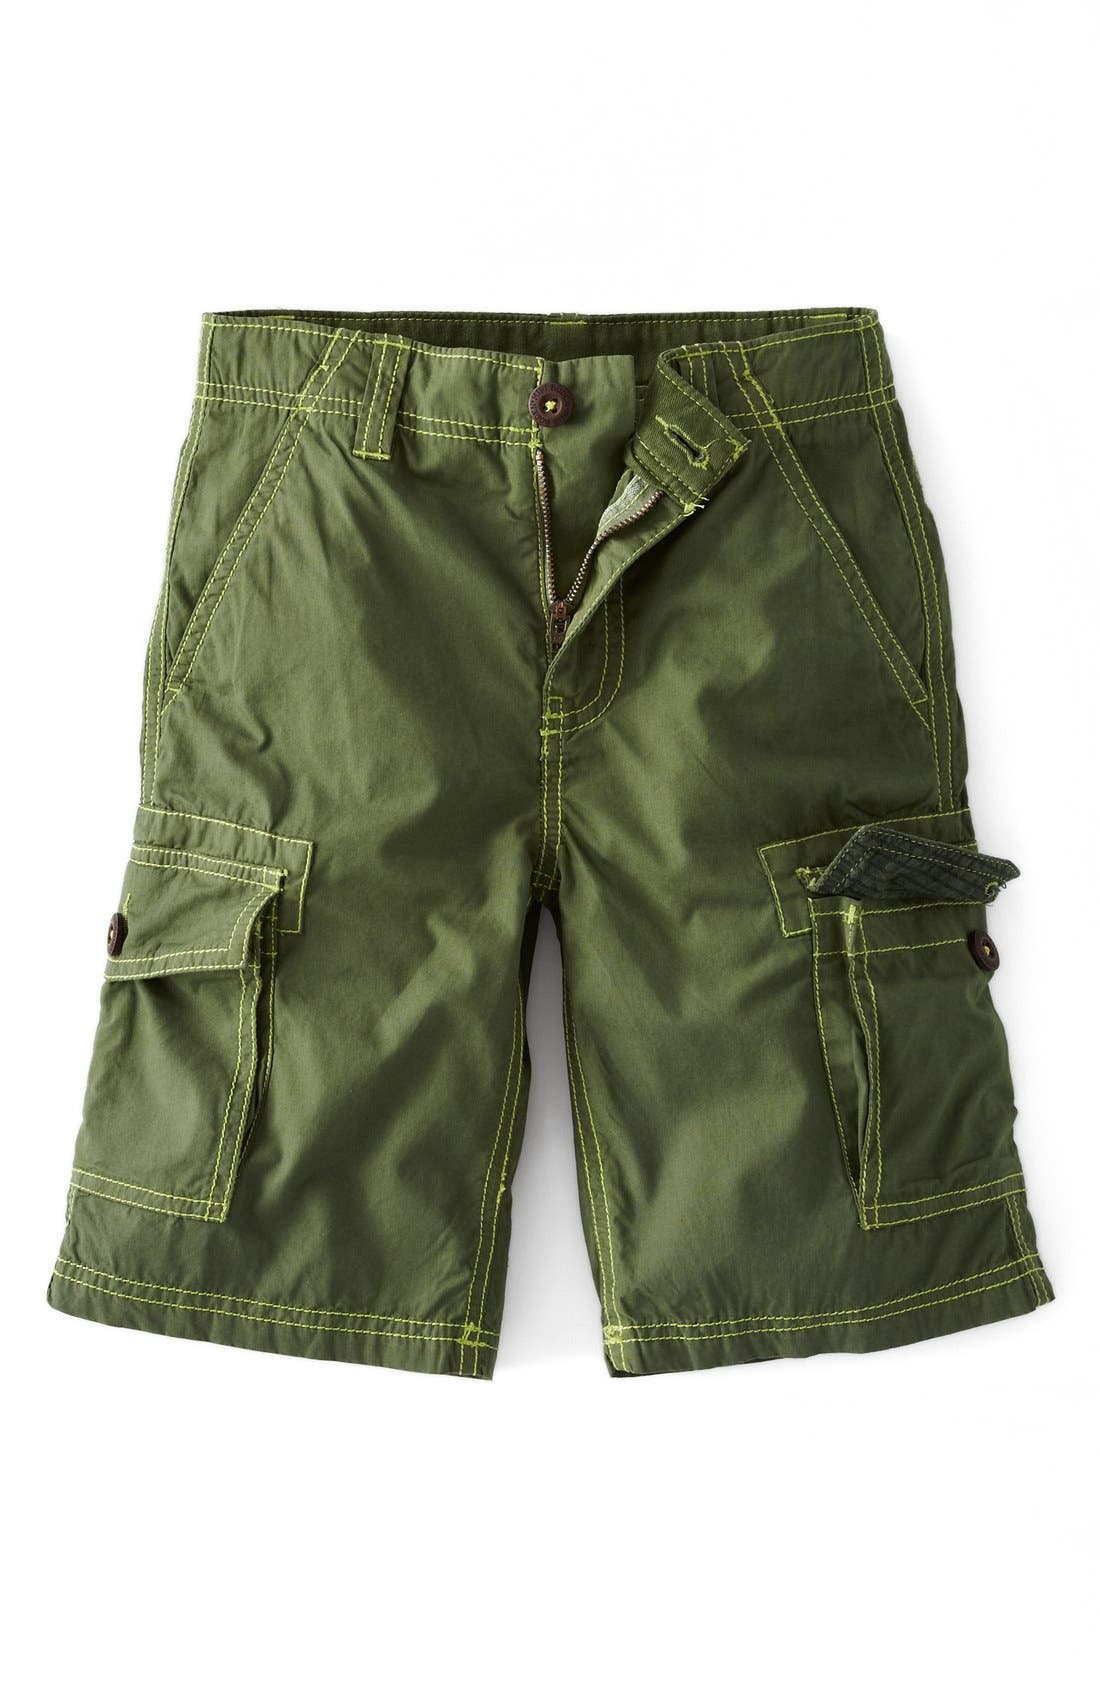 Main Image - Mini Boden 'Summer' Cargo Shorts (Toddlers, Little Boys & Big Boys)